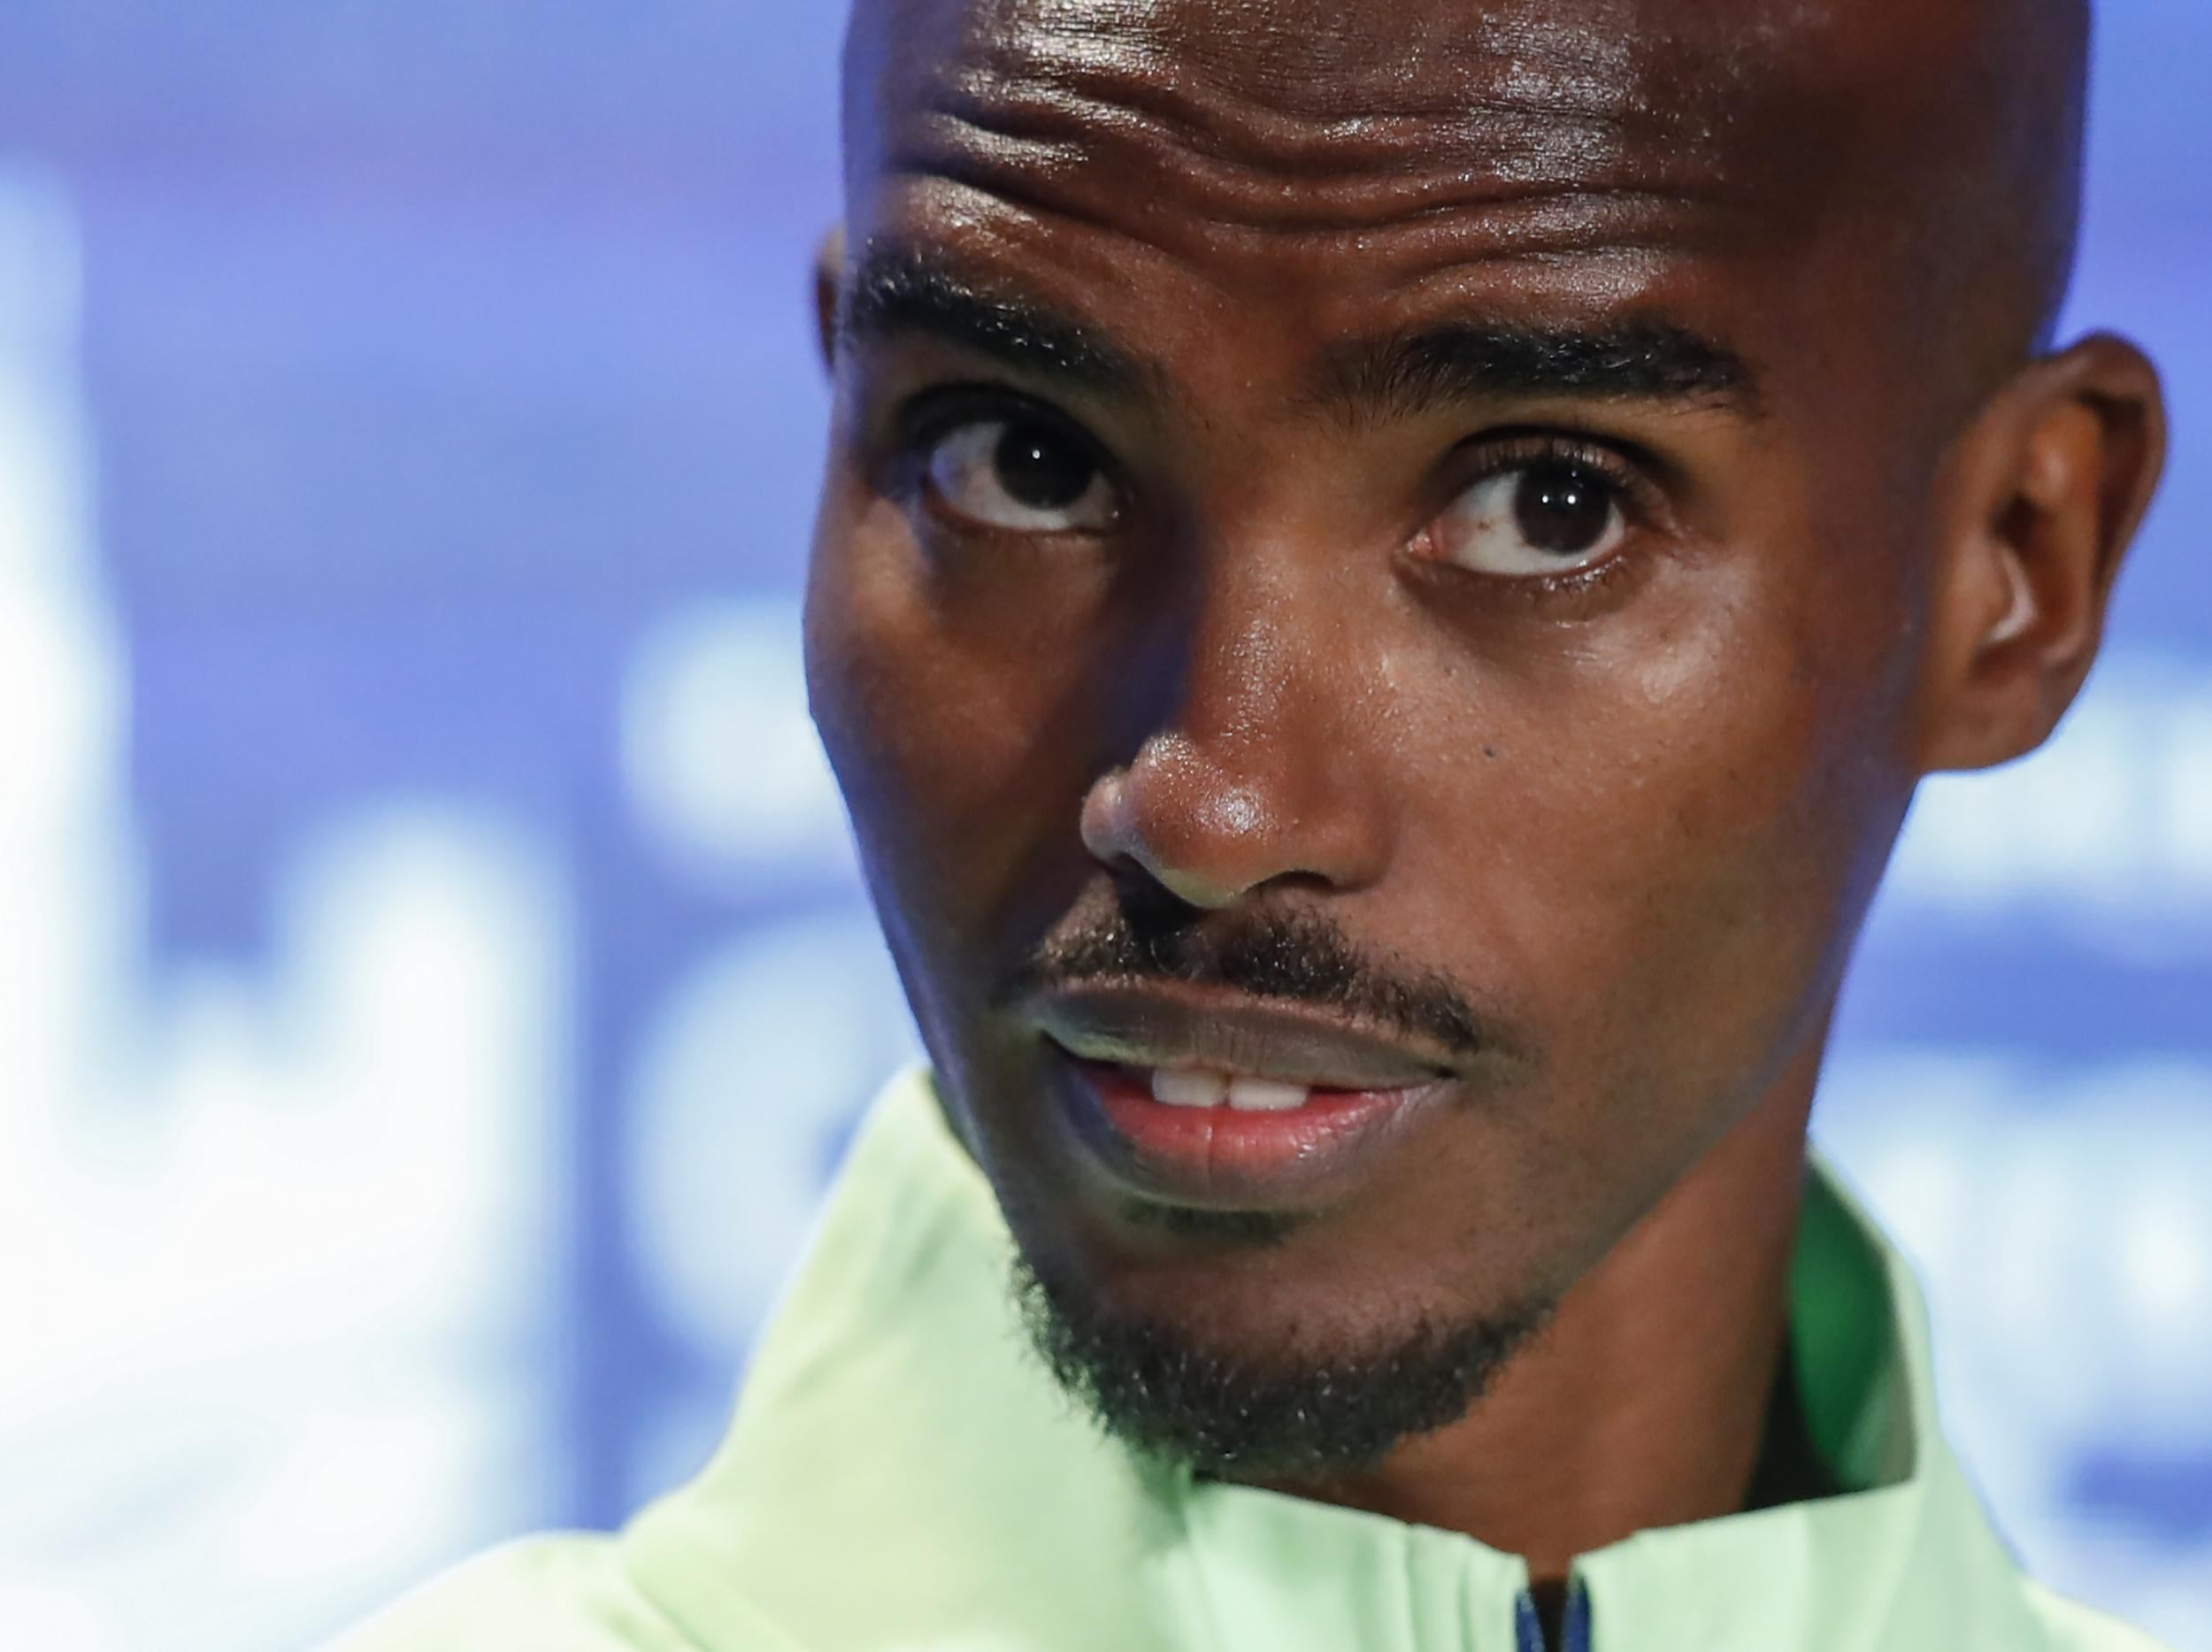 Sir Mo Farah hits out at questions on Alberto Salazar ban: 'There is a clear agenda to this'